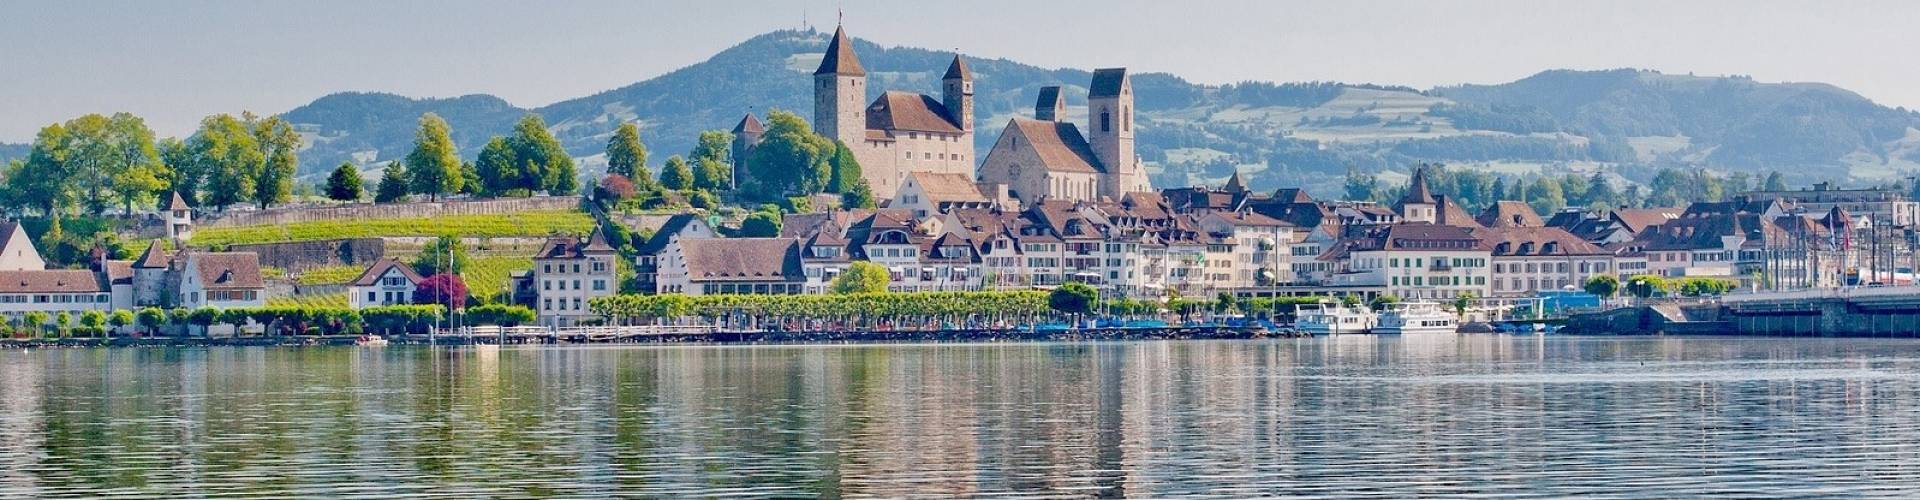 RE/MAX Immobilien Rapperswil-Jona